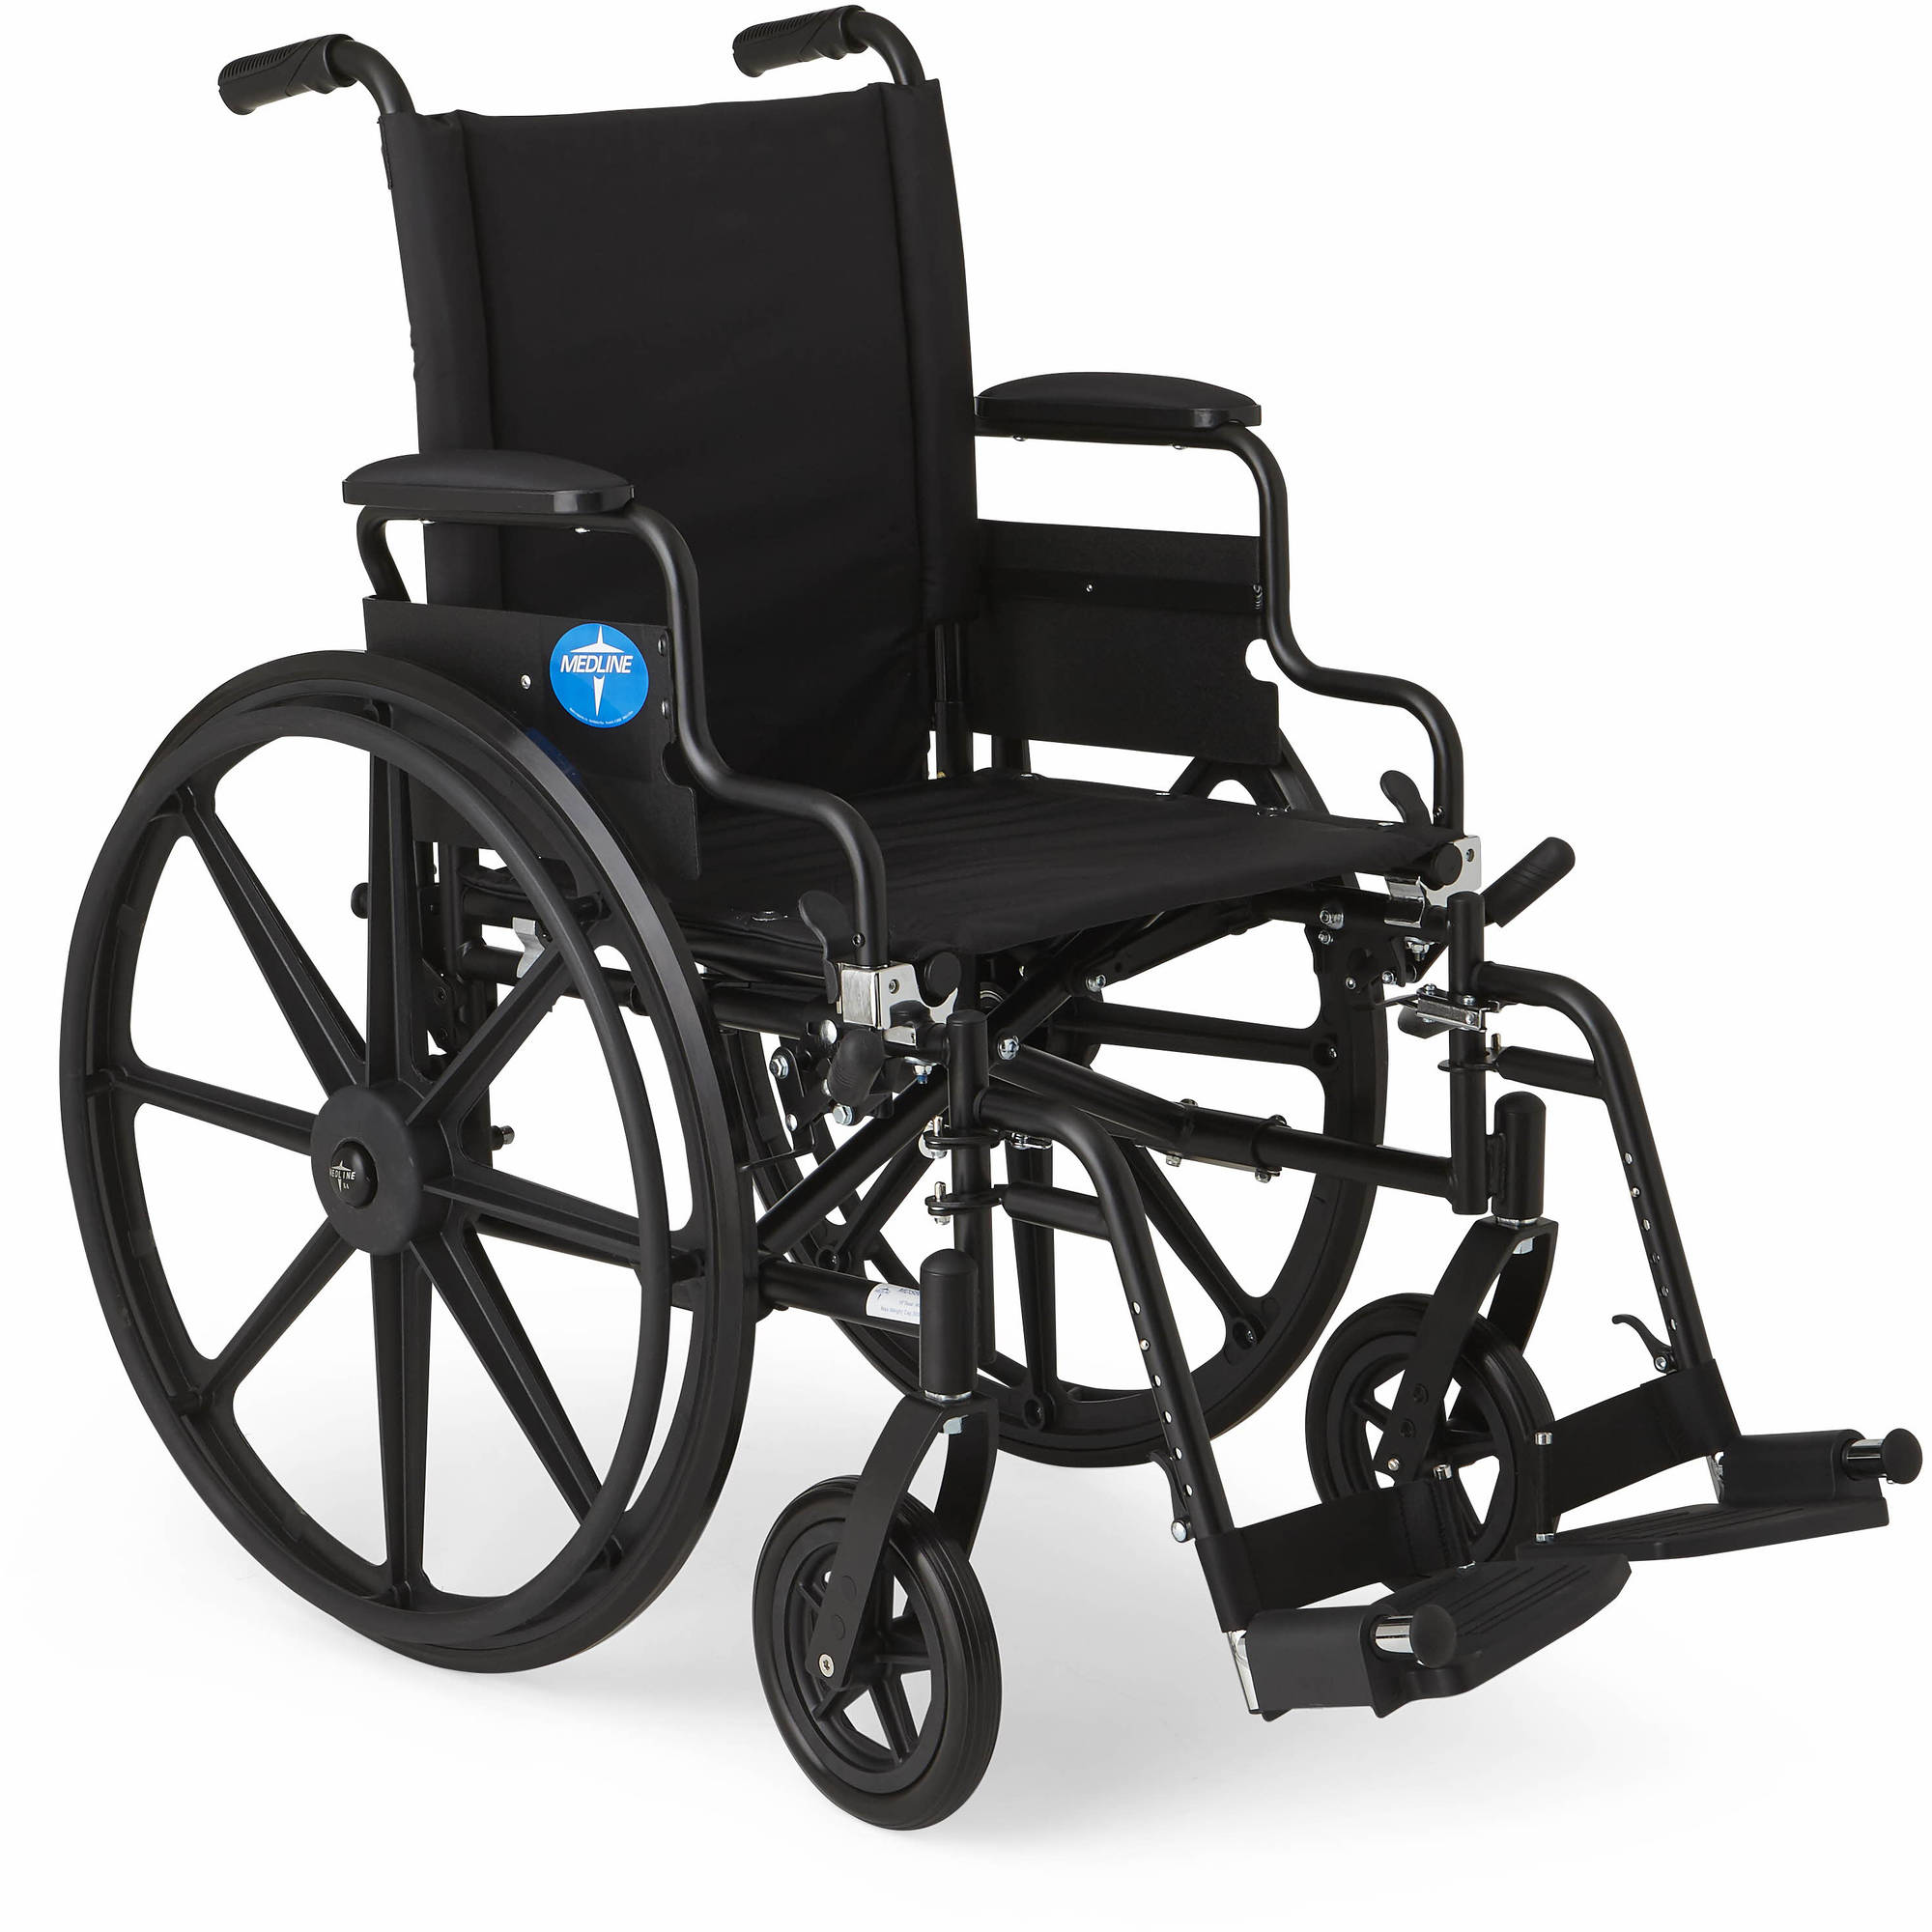 Medline's Premium Wheelchair